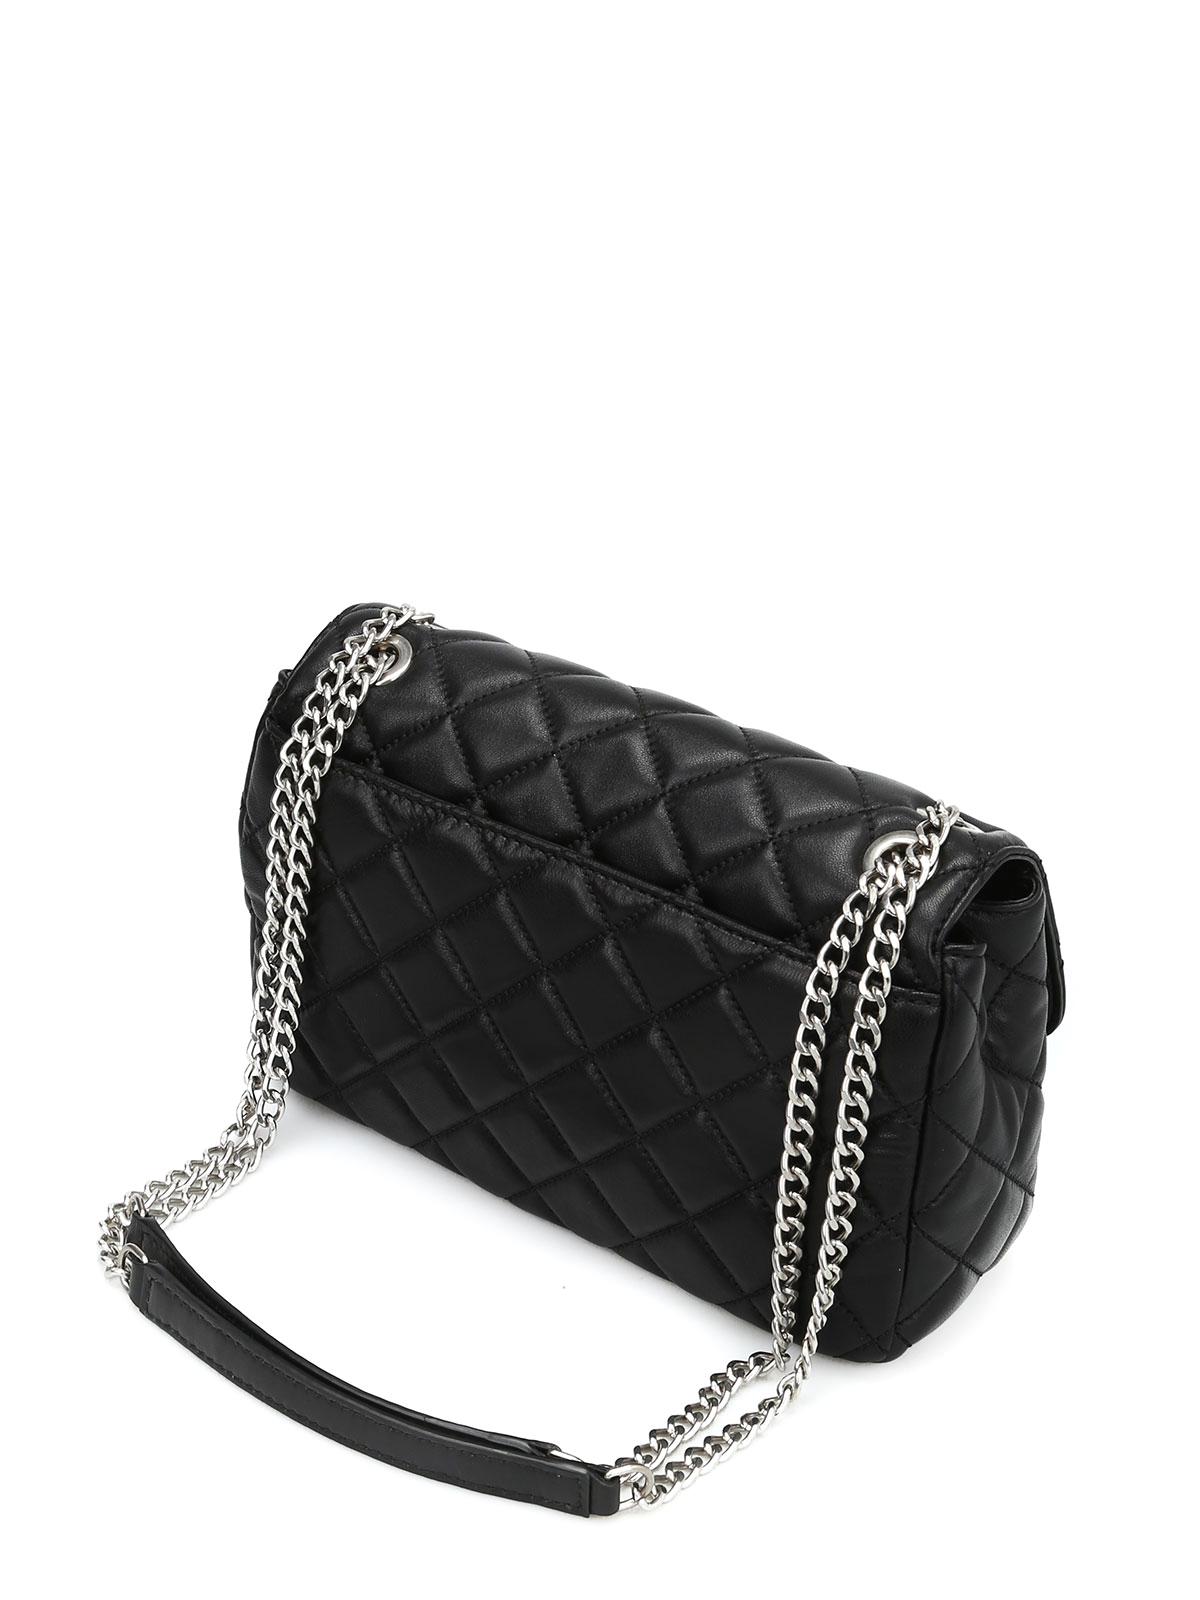 5a2f37346413 iKRIX MICHAEL KORS  shoulder bags - Sloan quilted leather crossbody bag